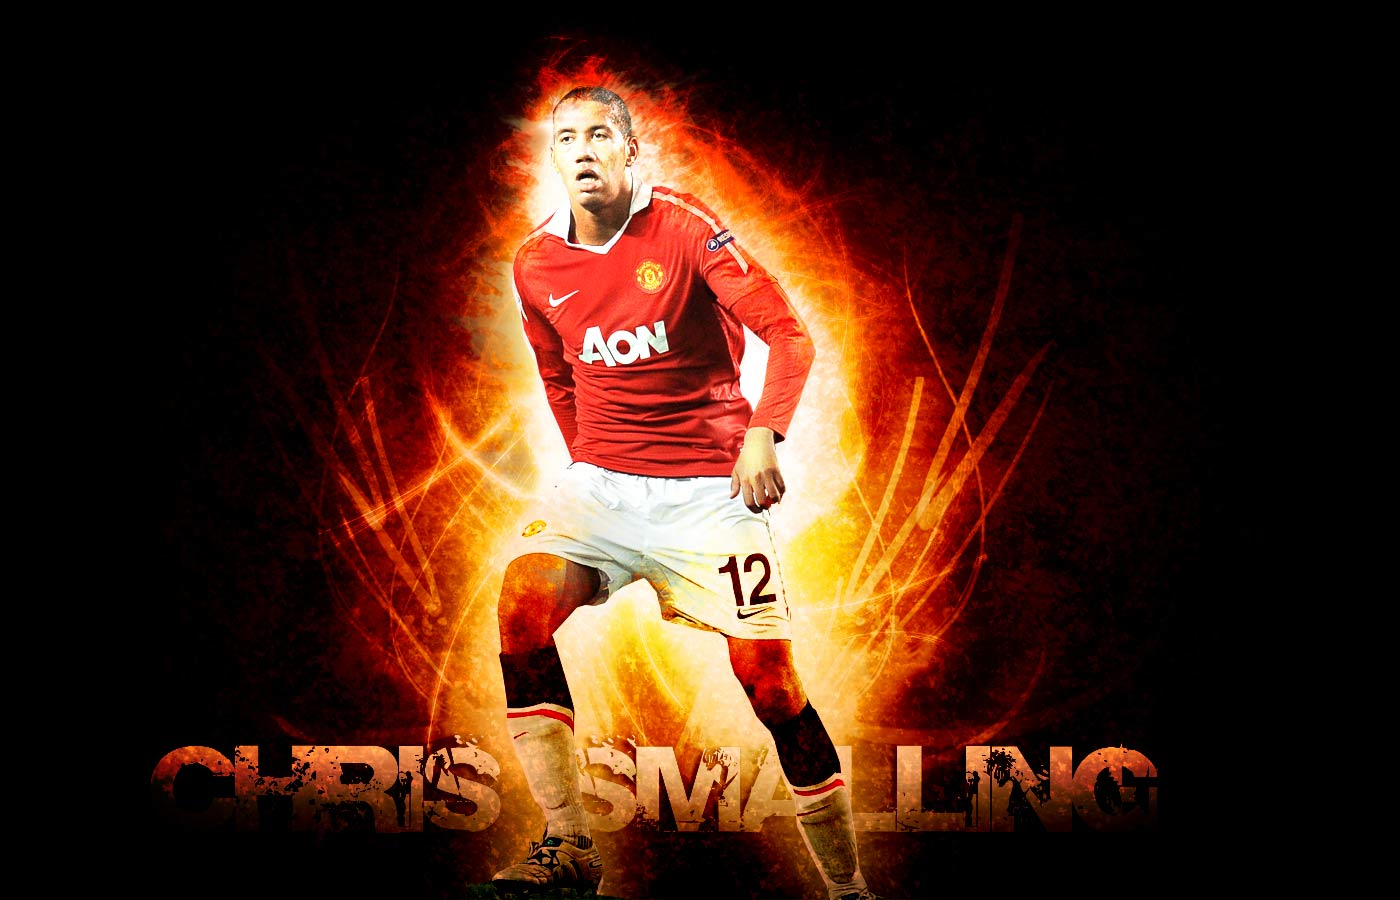 Manchester United Wallpaper Android Phone: Chris Smalling